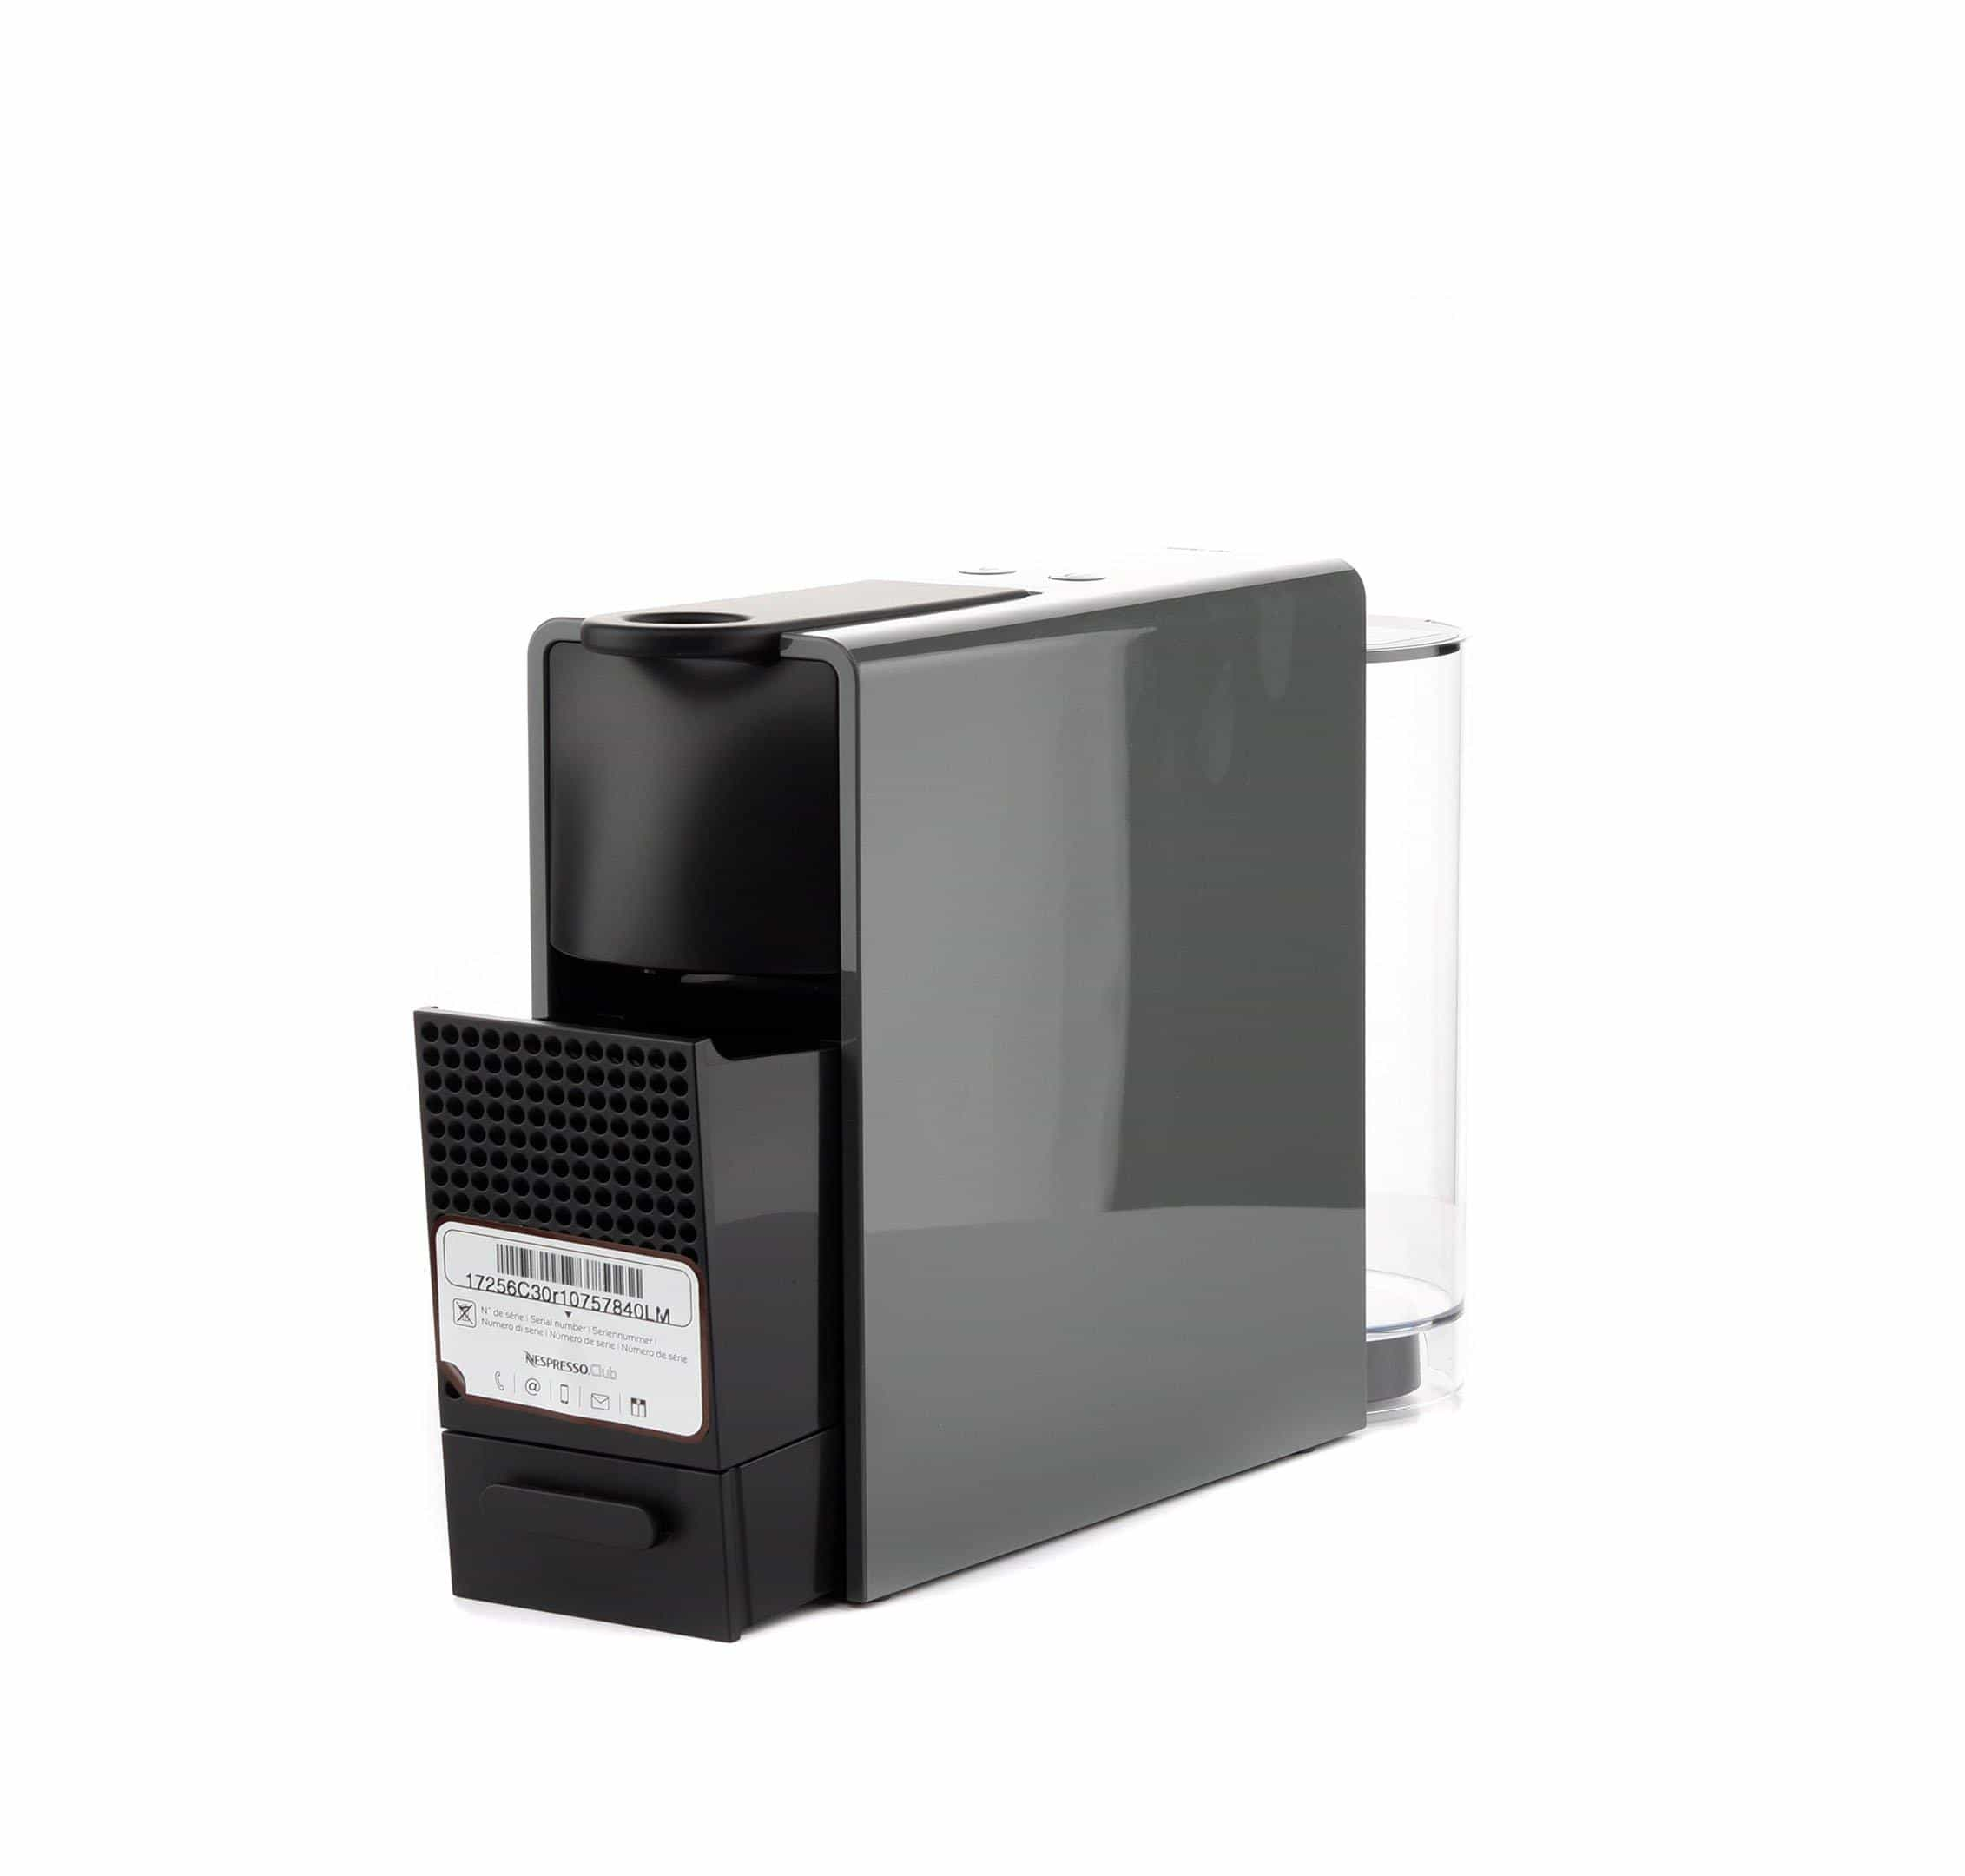 Compare Nespresso Essenza Mini Coffee Machine Grey at KSA Price